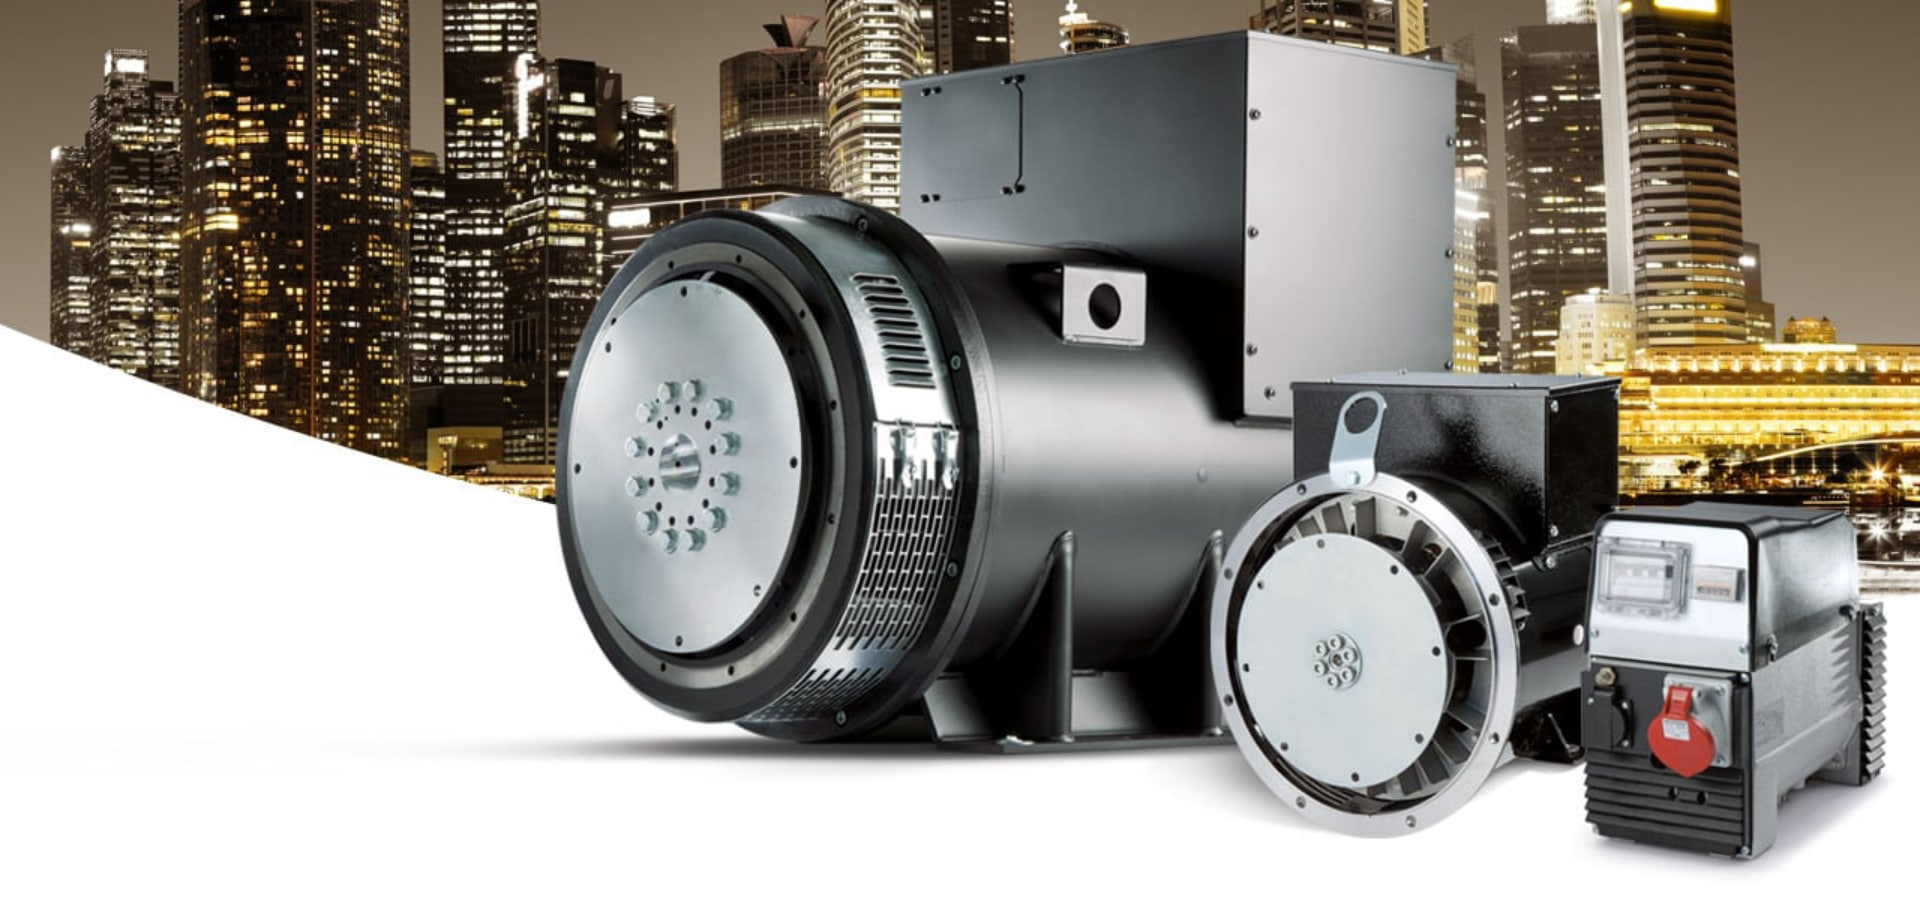 Sincro Alternatorsfor the generator market - Electric generator